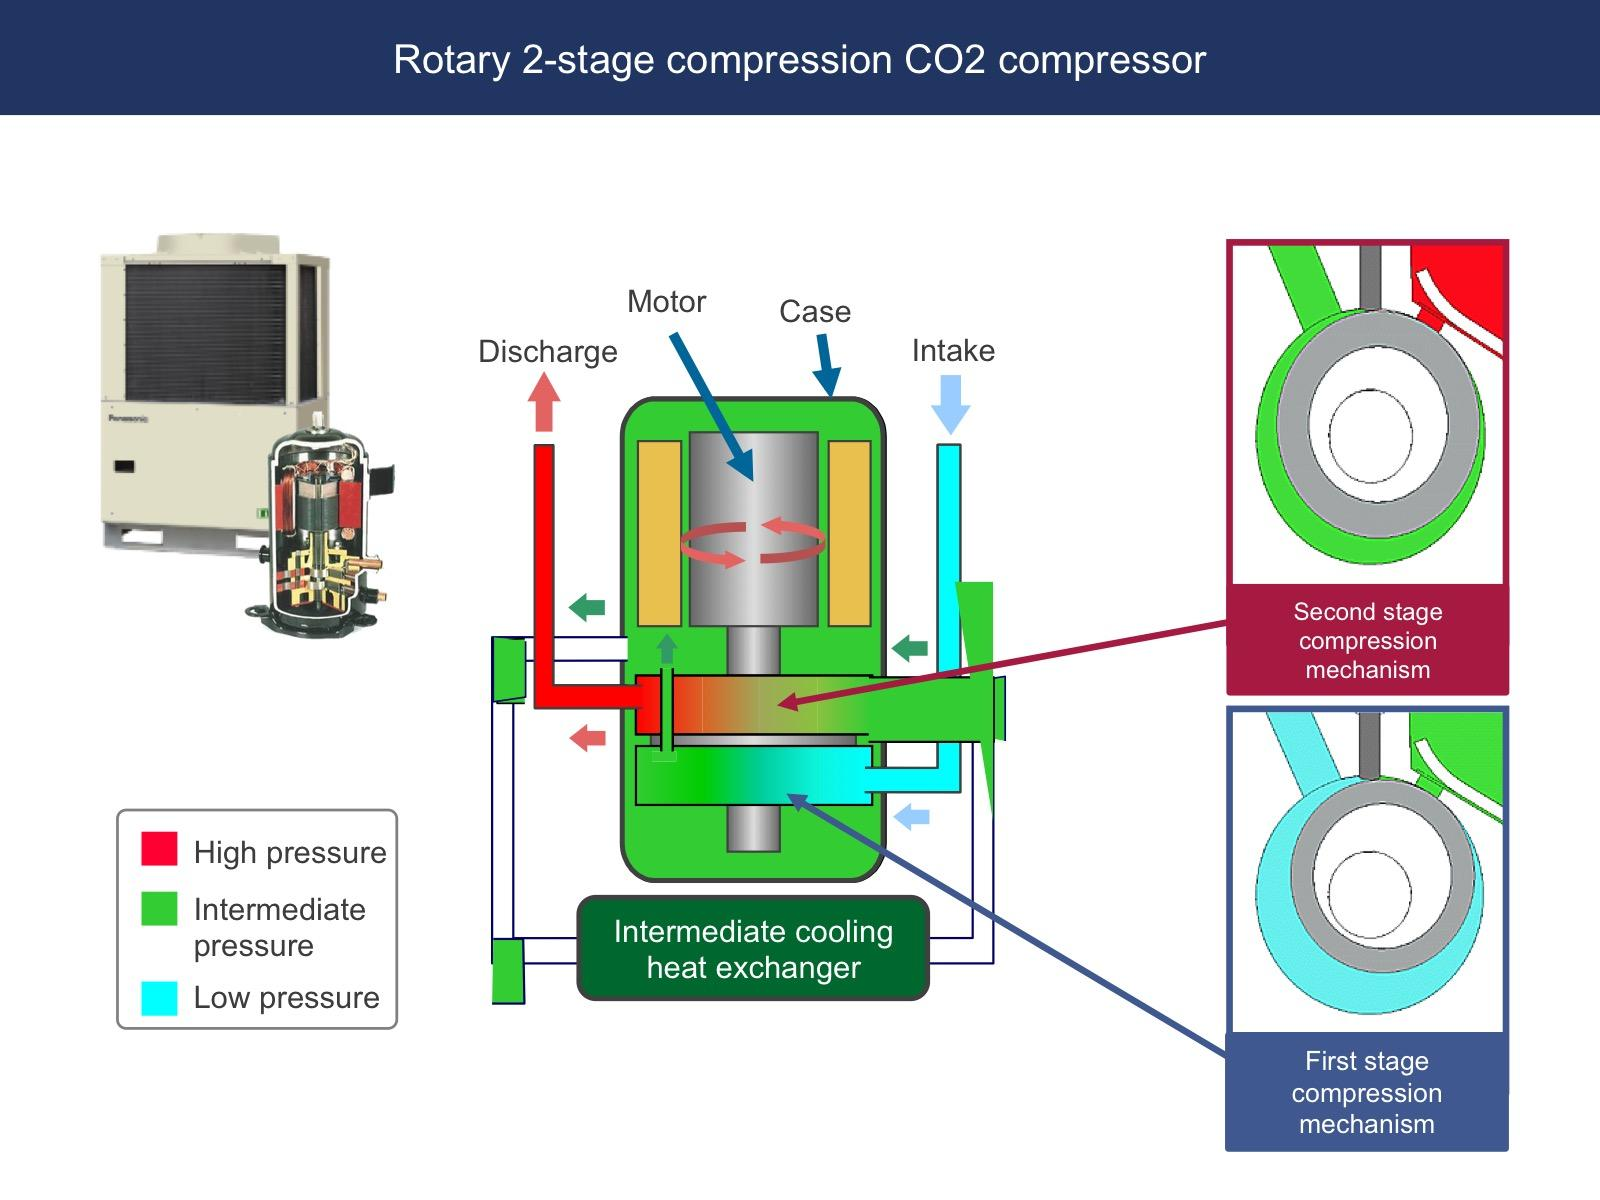 image: panasonic's rotary 2-stage compression CO2 compressor